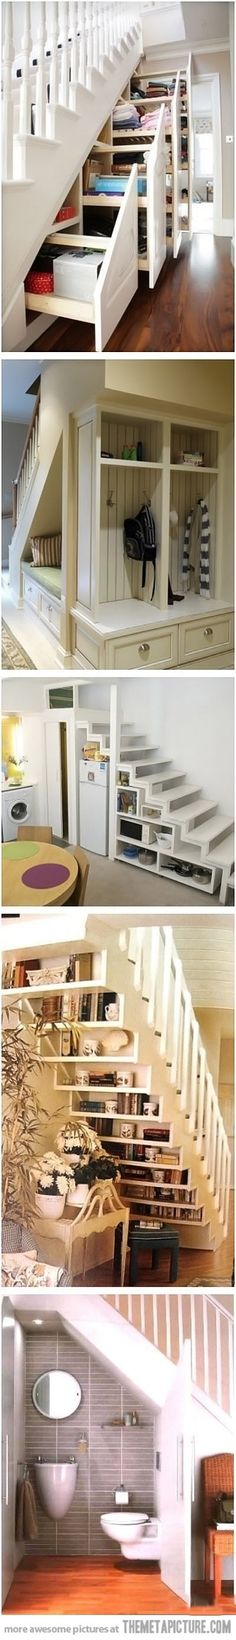 Brilliant ideas for under the stairs…love the shelv